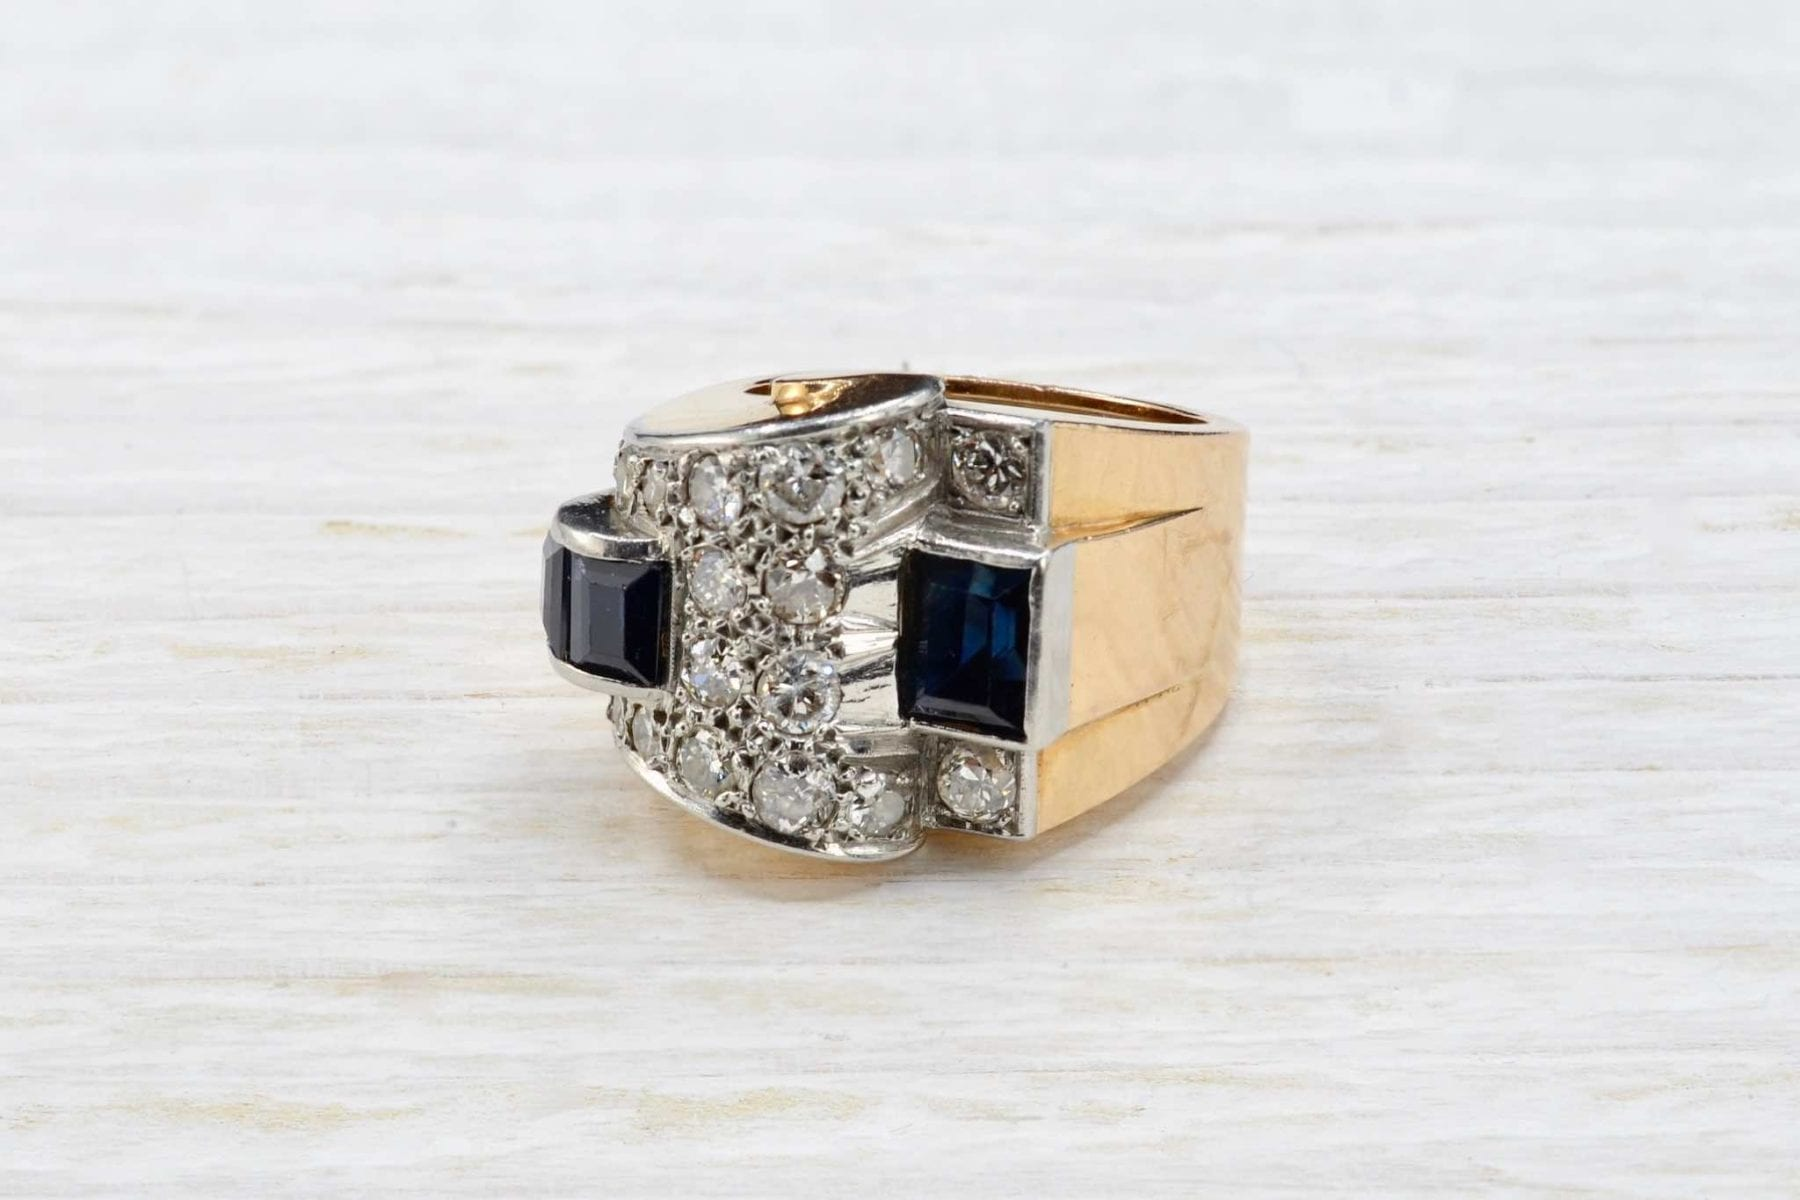 sapphire and diamonds ¨tank¨ring